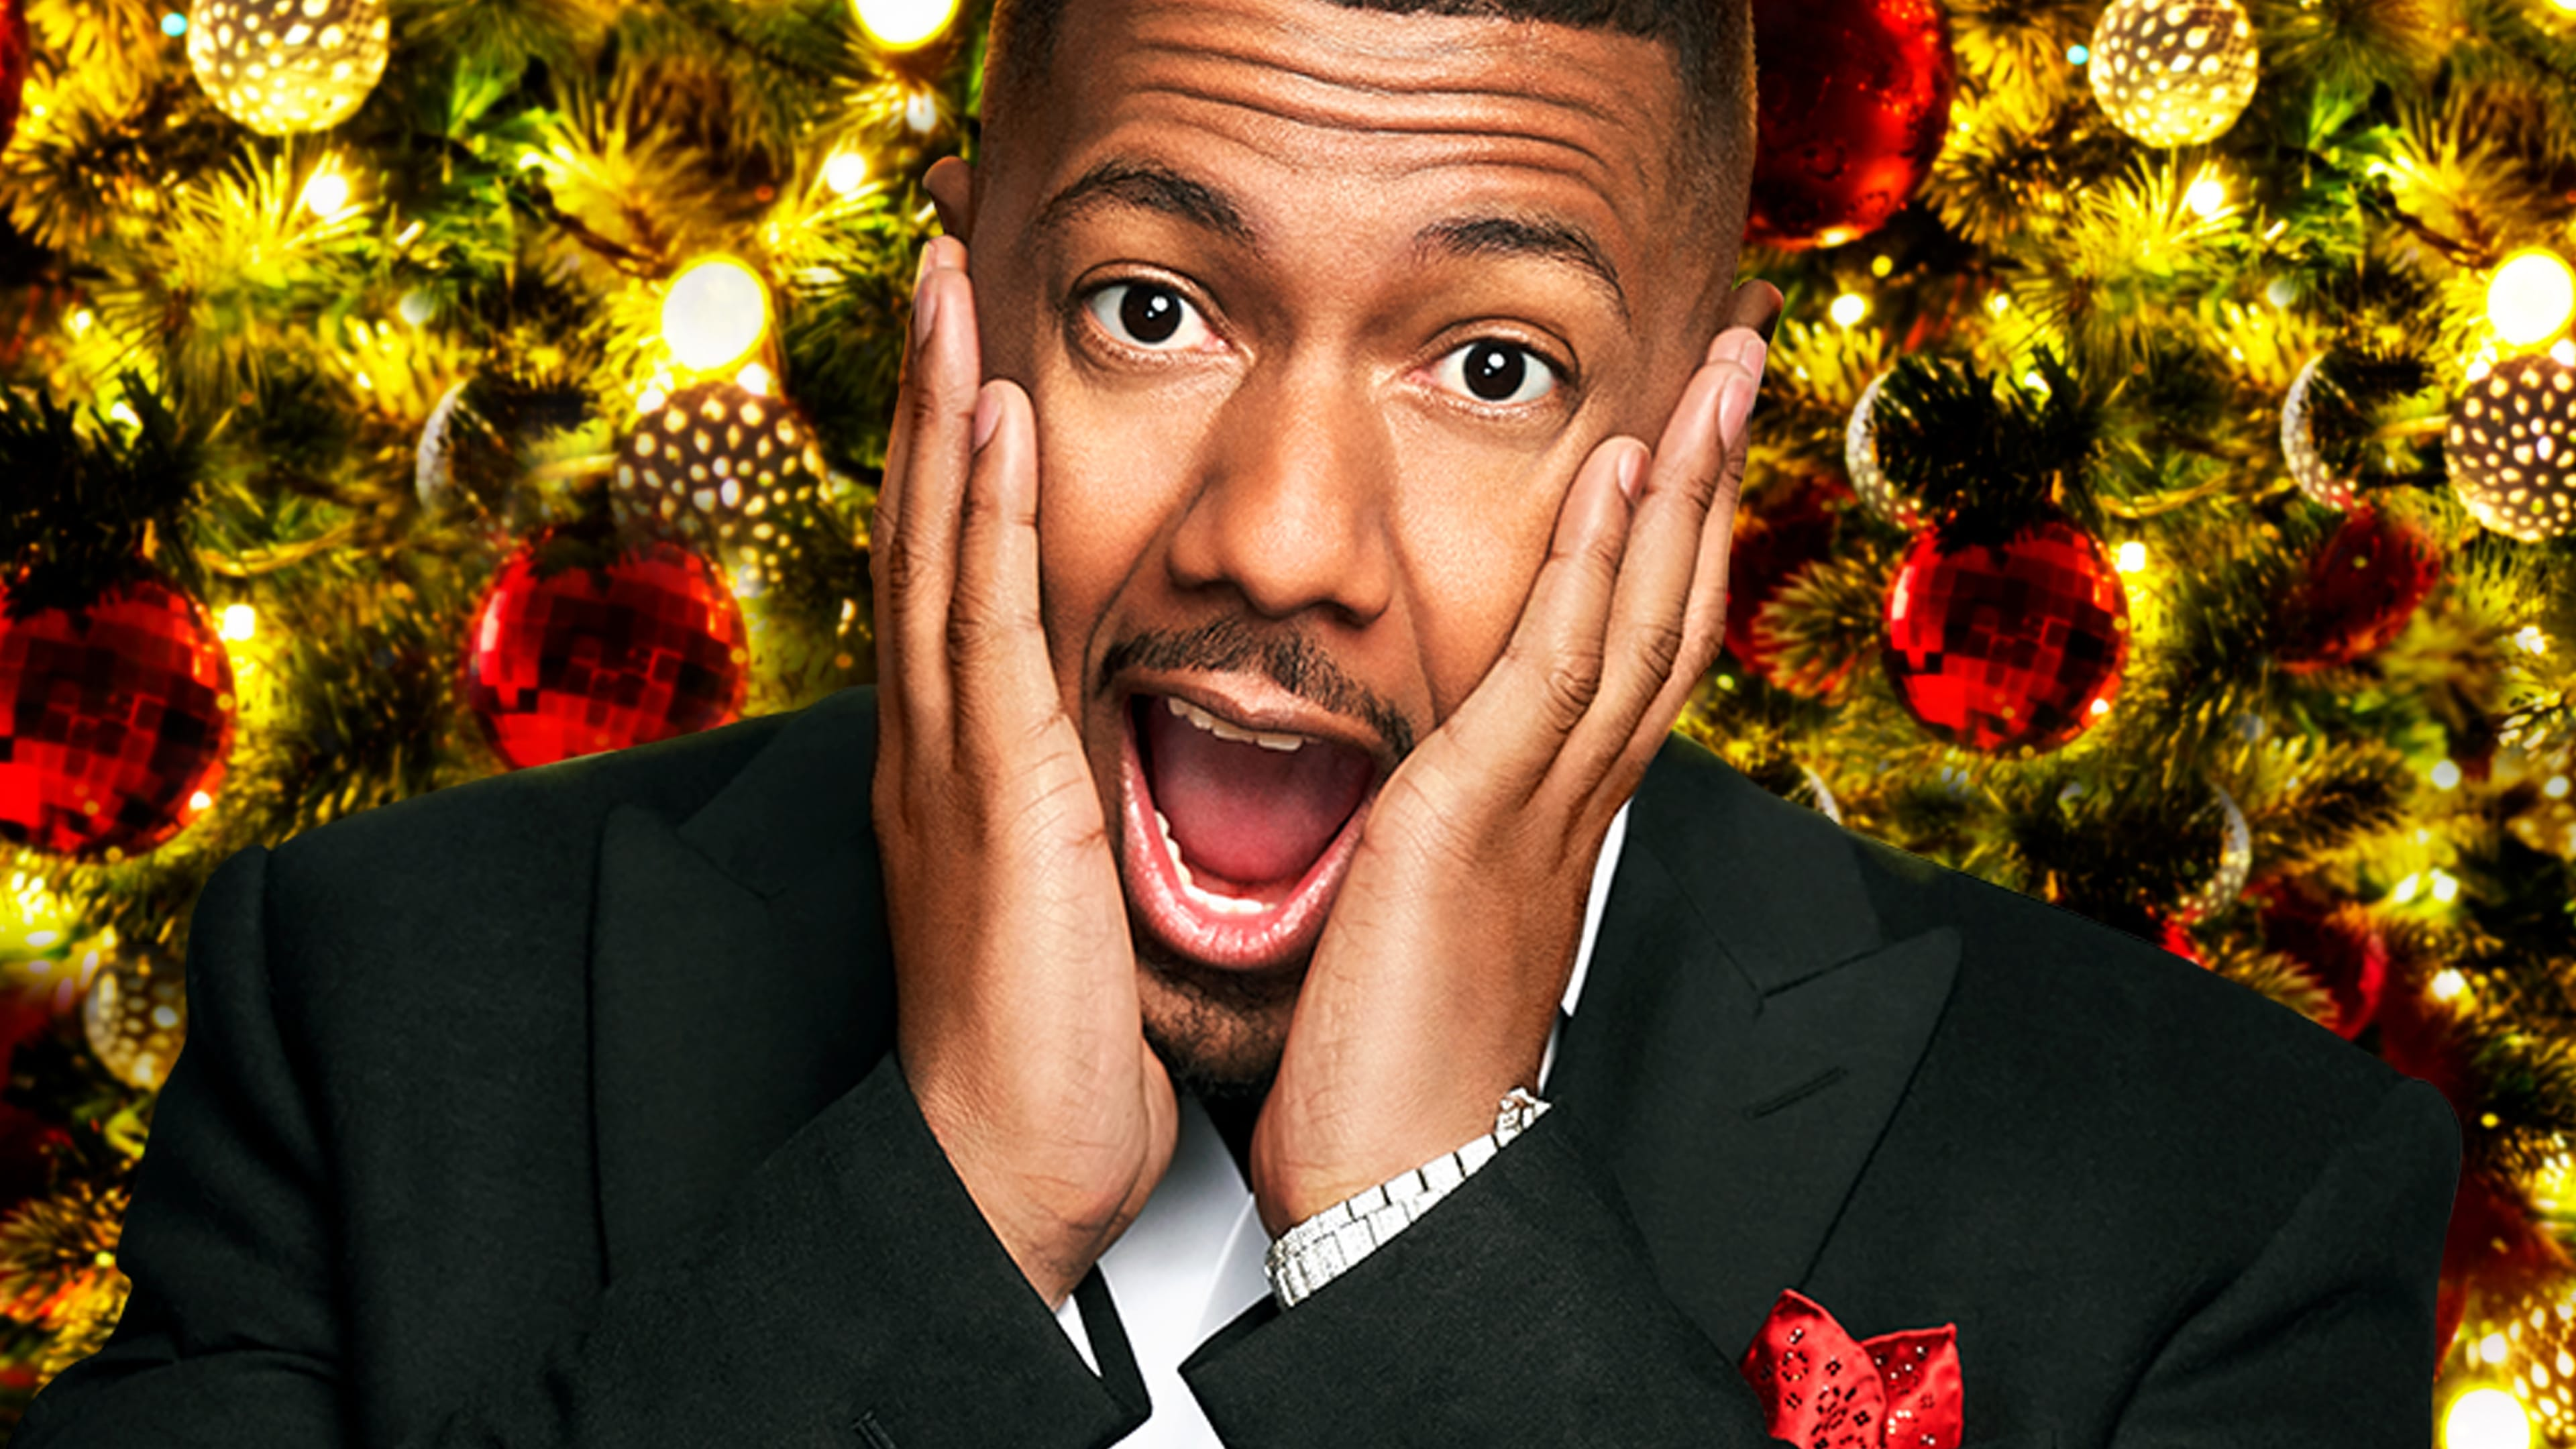 Nick Cannon in Nick Cannon's Hit Viral Videos: Holiday 2019 (2019)